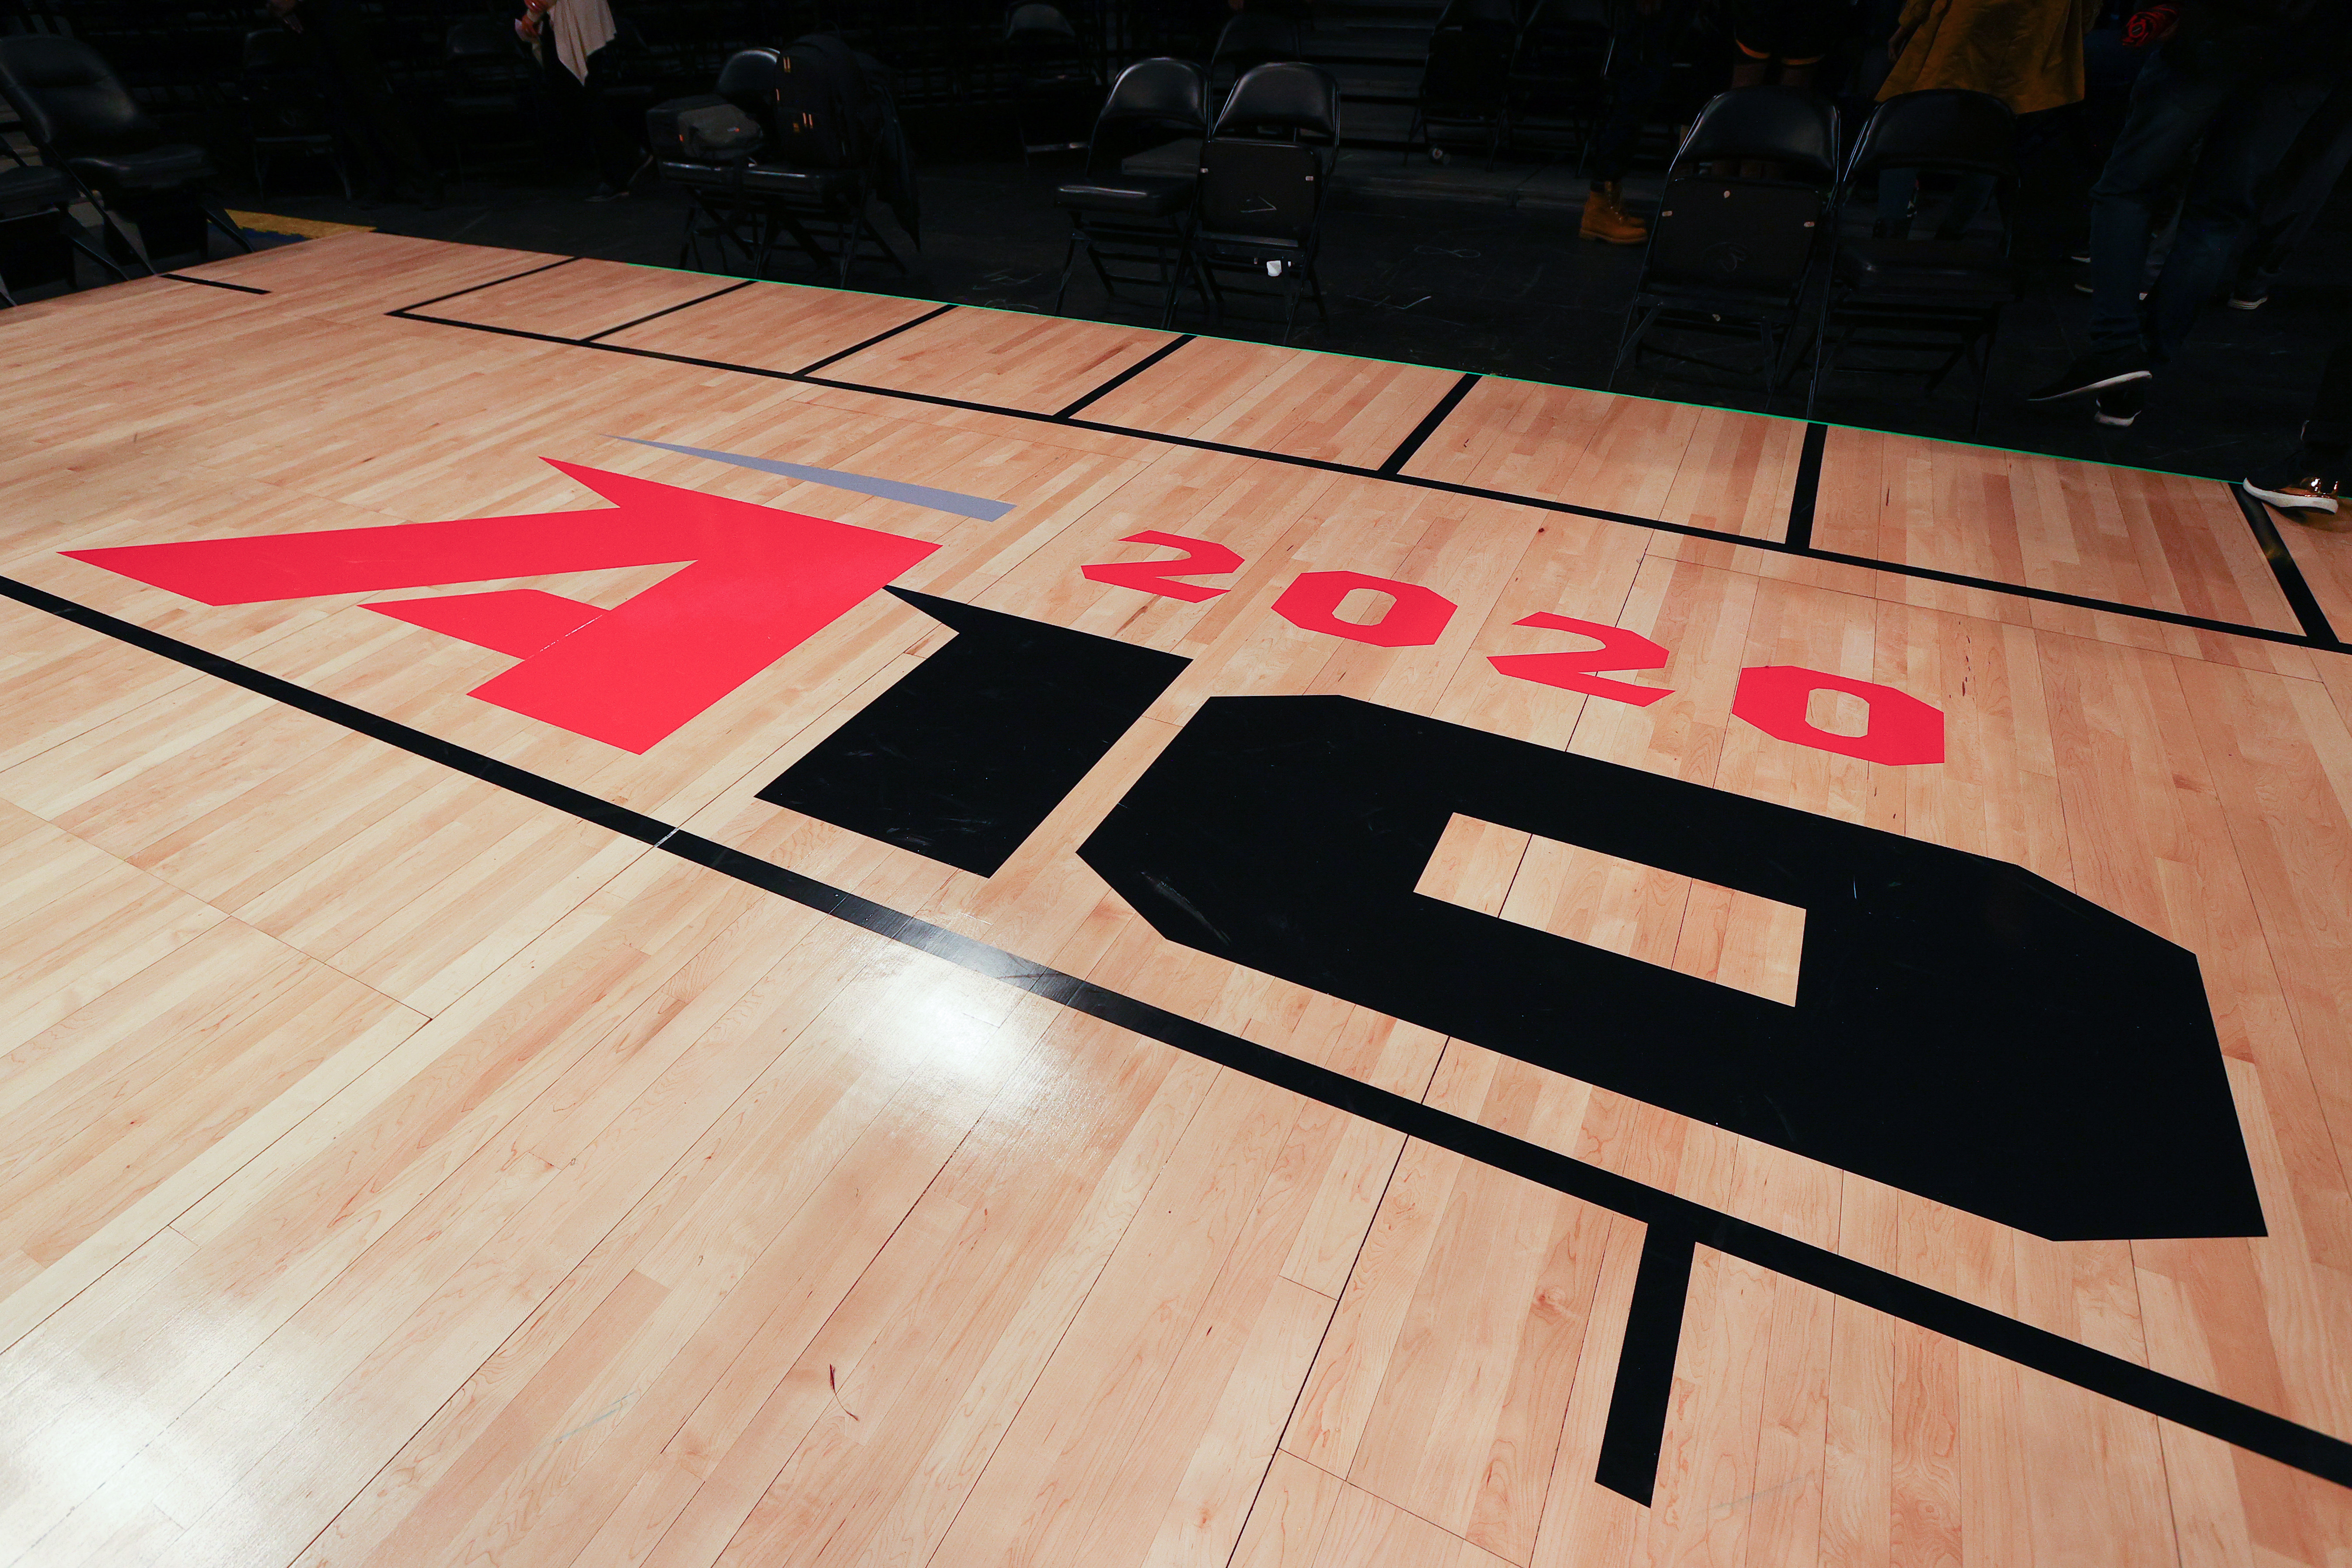 A general view of the A-10 logo on the court after the canceling of the Atlantic 10 Tournament on March 12, 2020 at the Barclays Center in Brooklyn, NY.